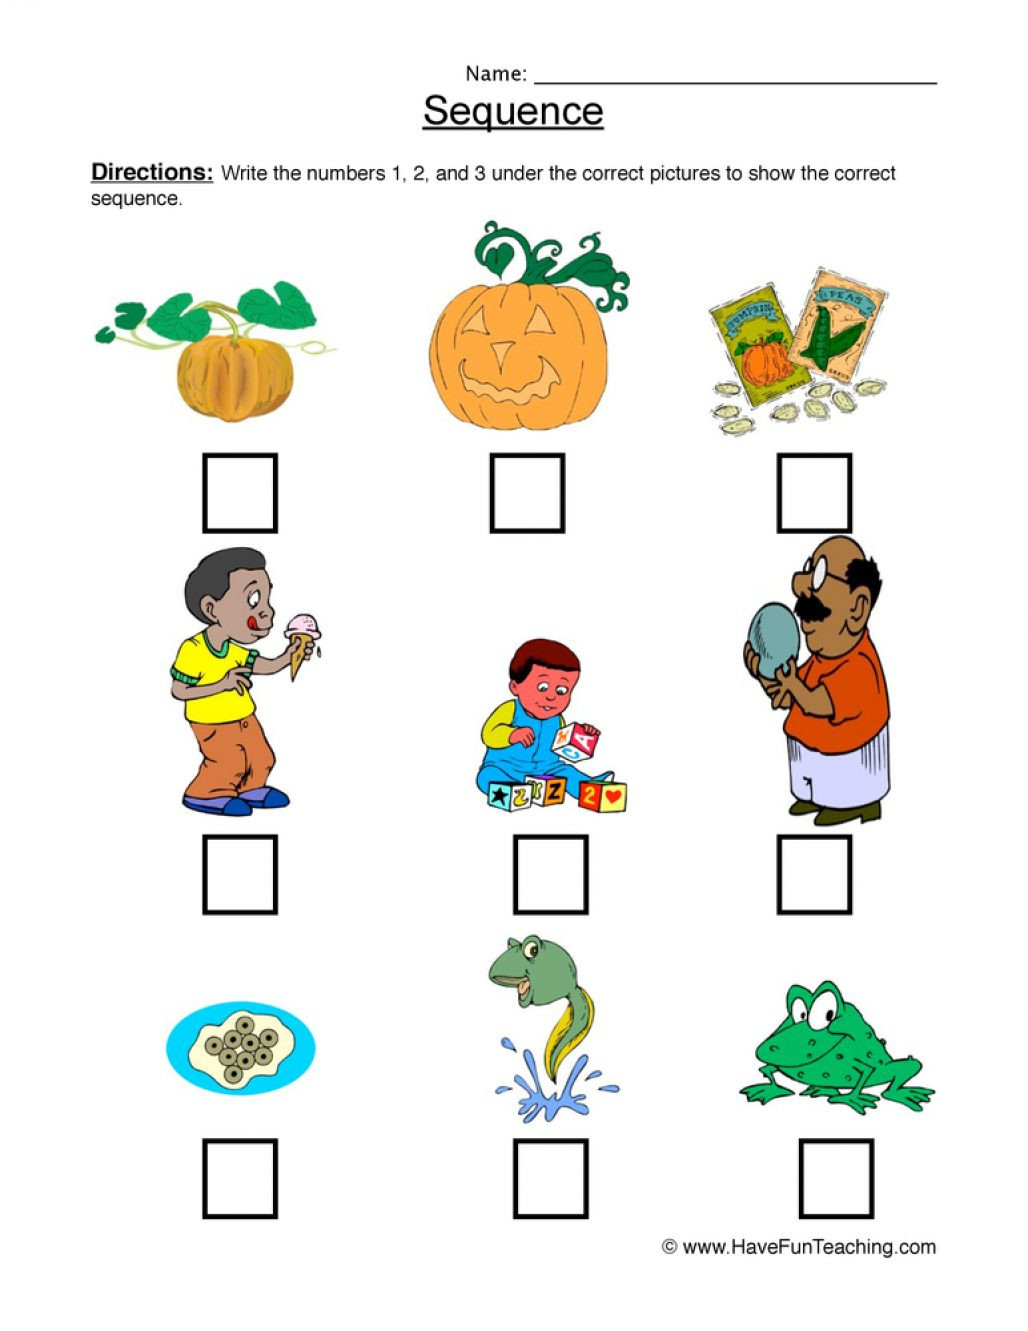 Sequencing events Worksheets Grade 6 New Sequencing events Worksheet